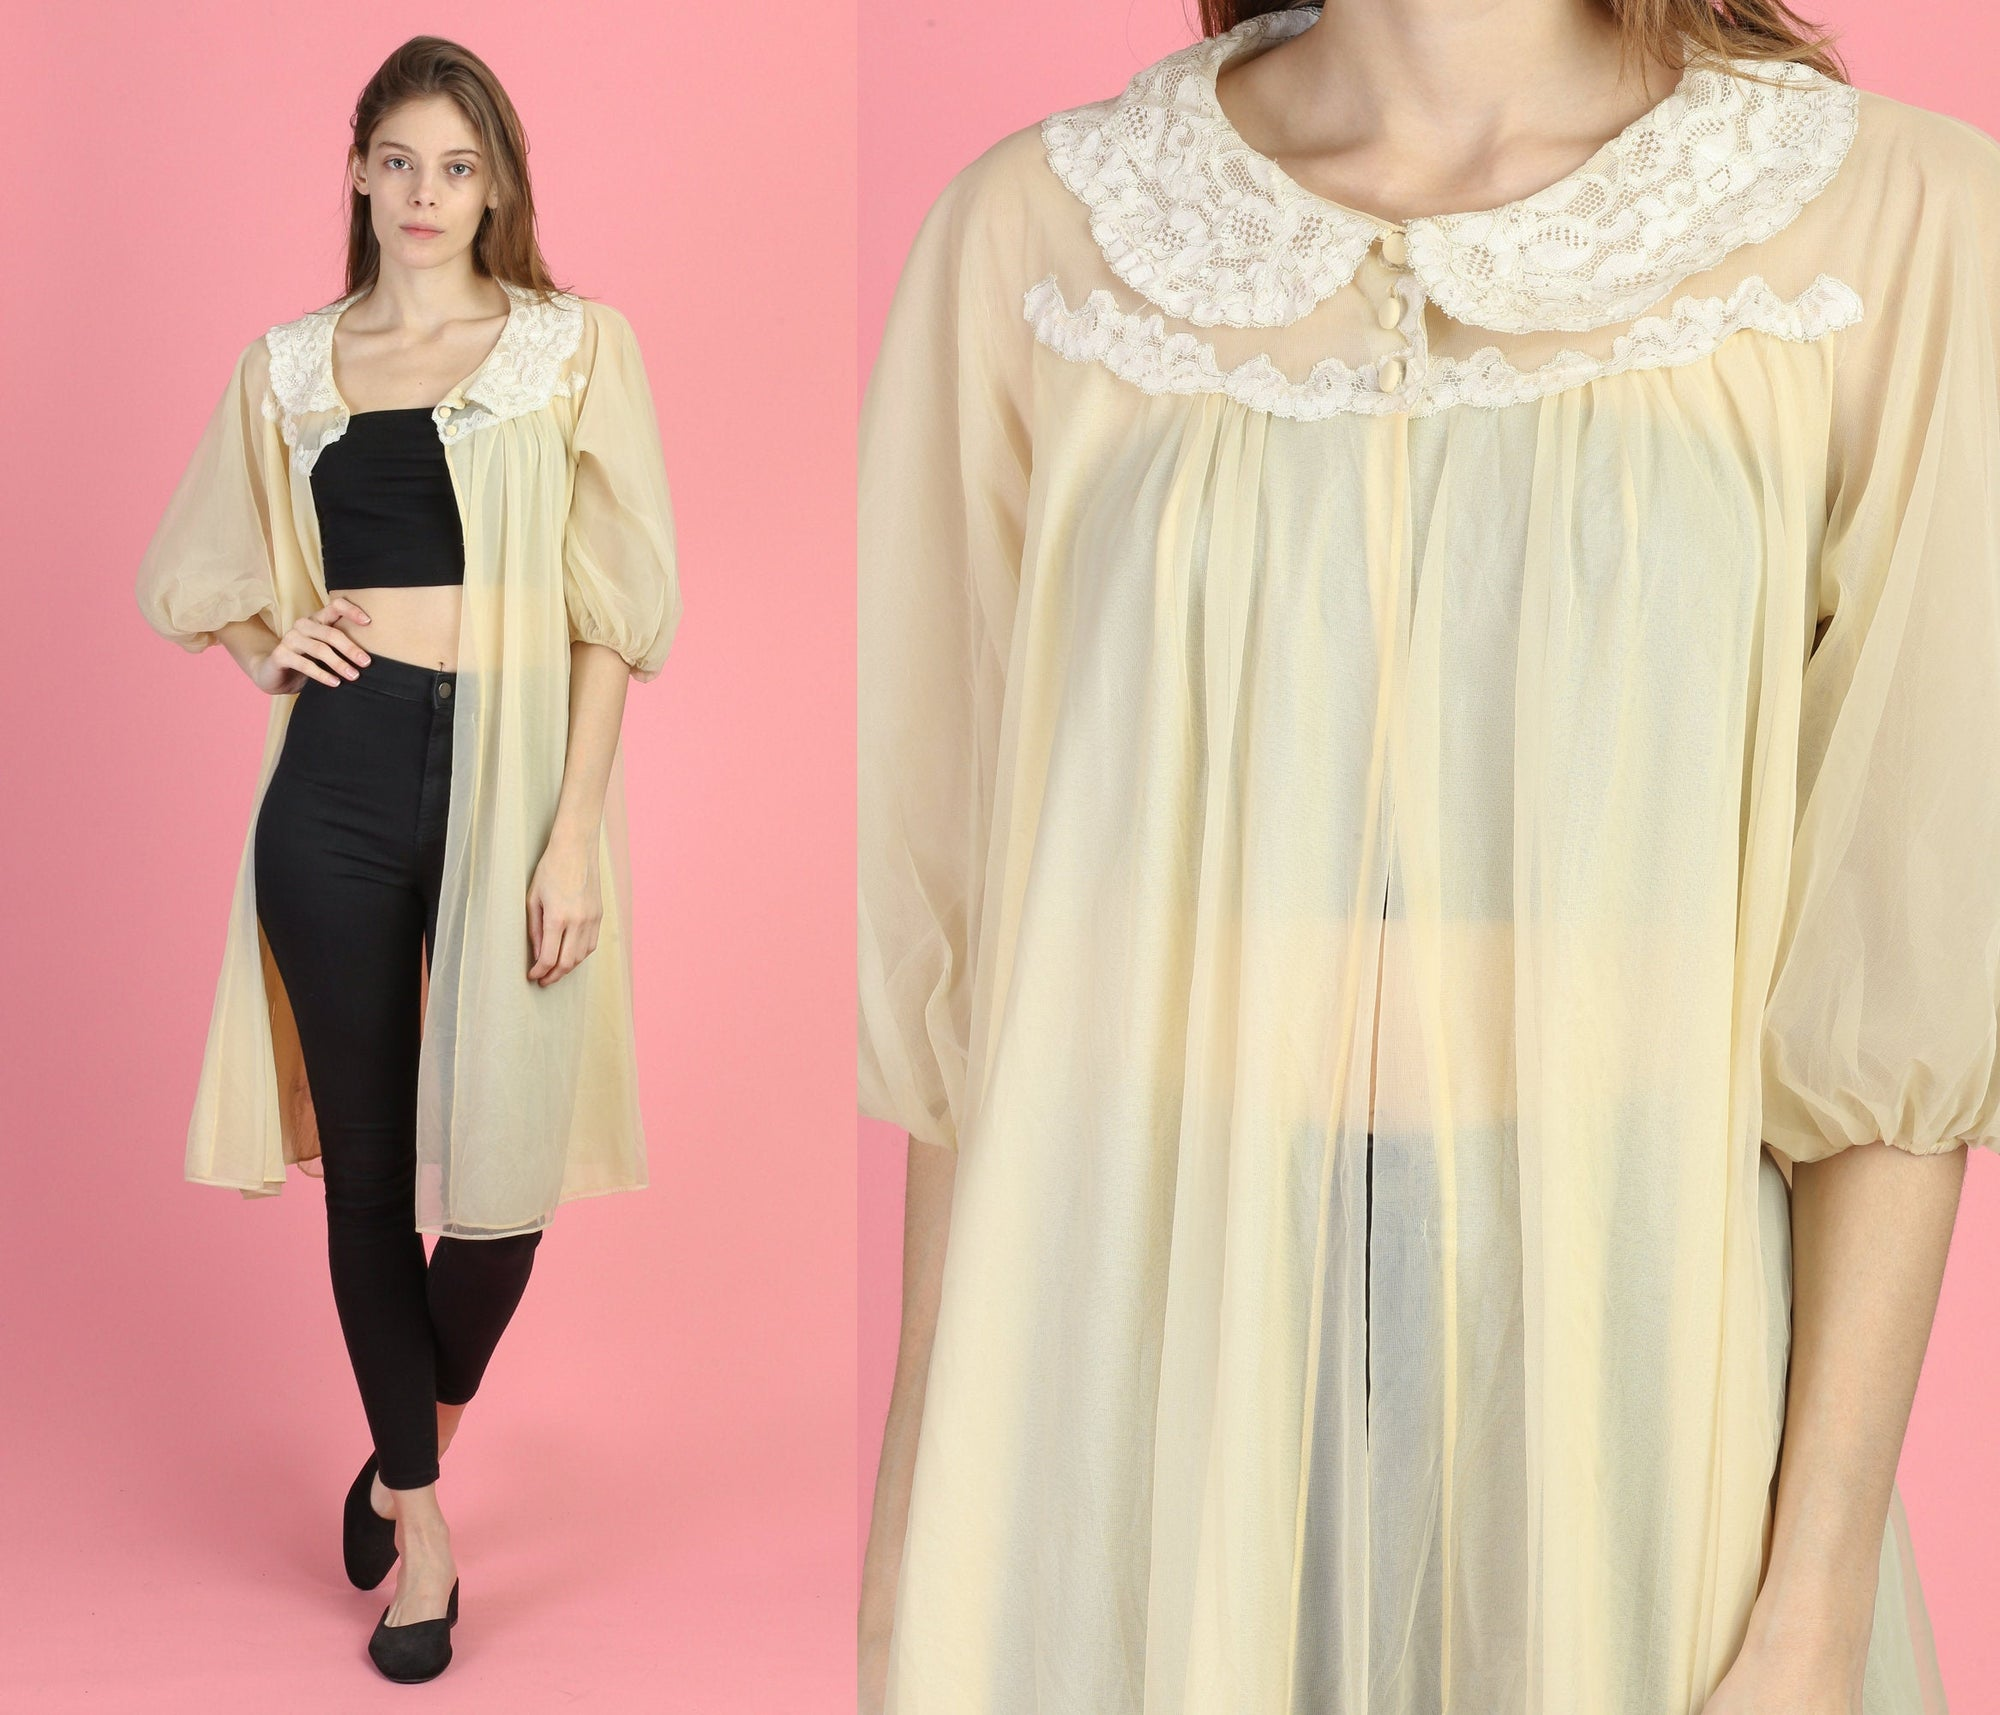 60s Sheer Peignoir Robe - Small